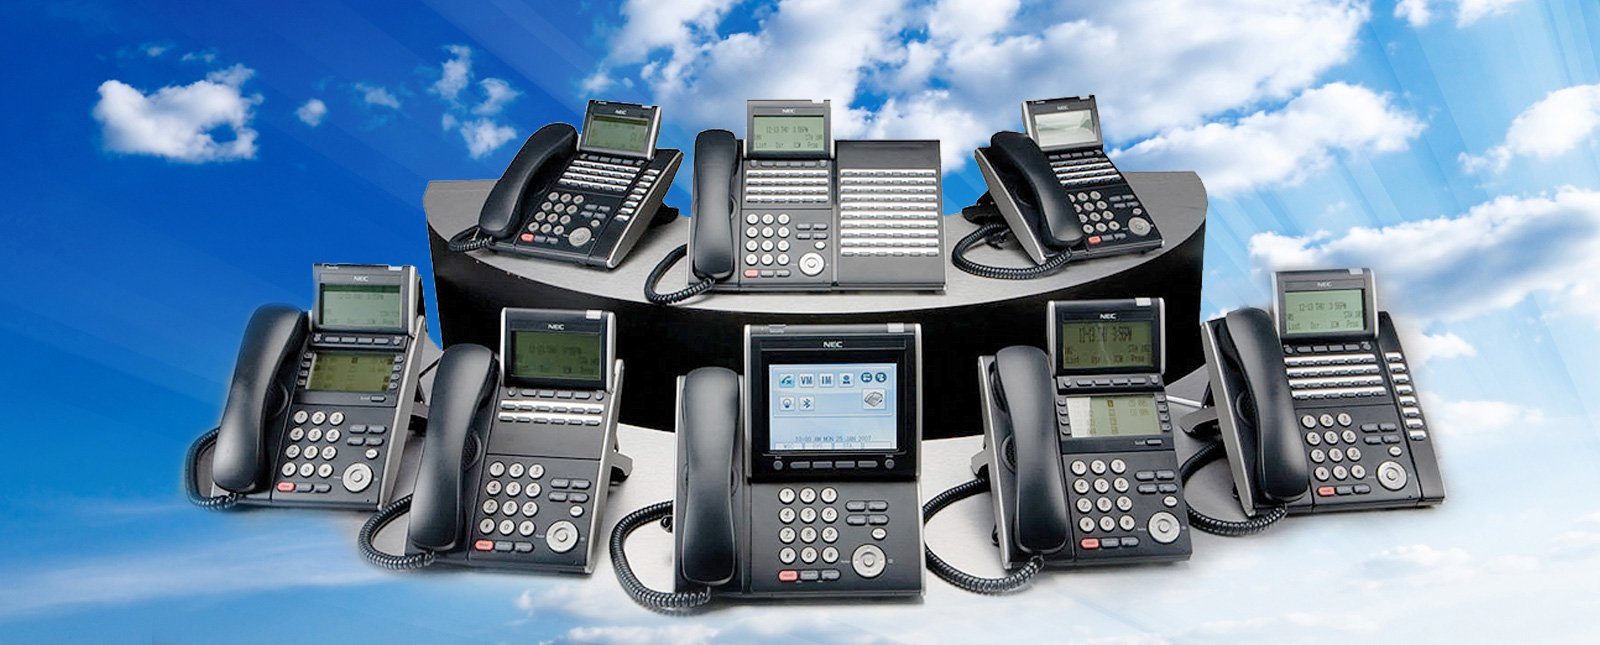 Enjoy The Best Workplace Telephone System In Dubai